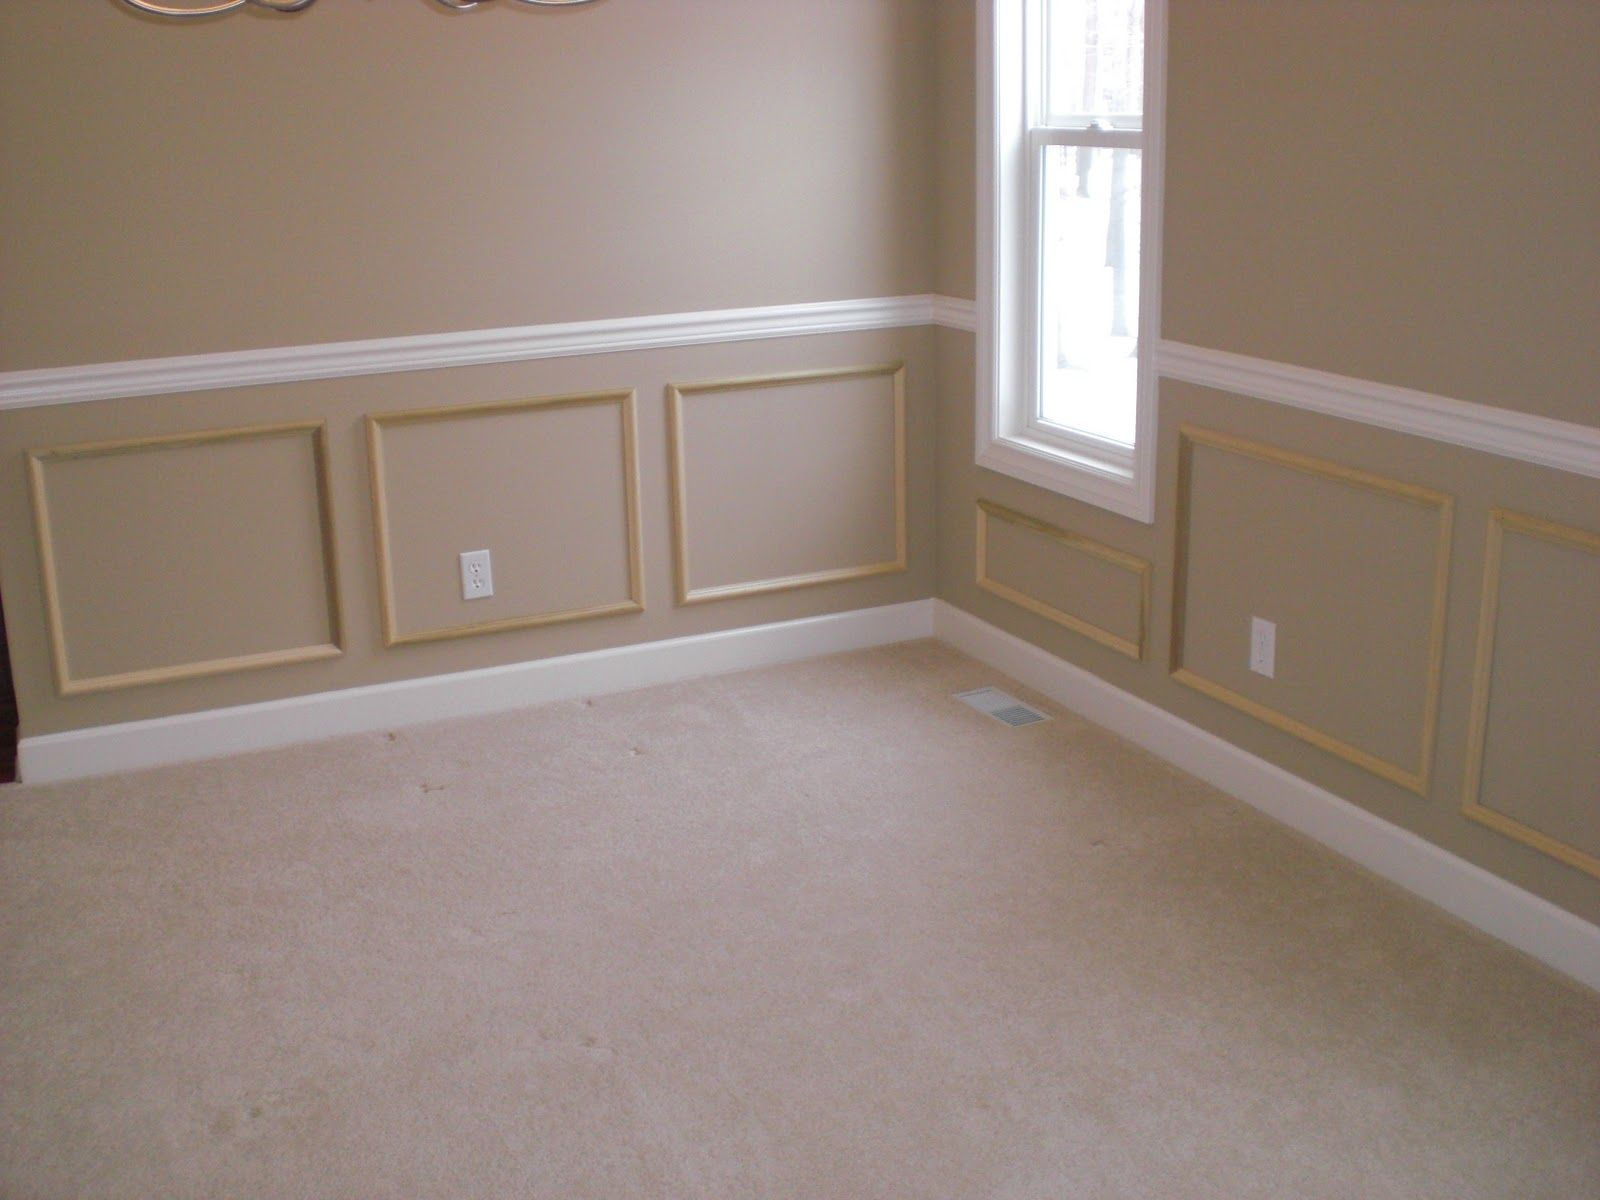 Di Diy Wainscoting Dining Room - Room karen at home diy wainscoting wallpaper